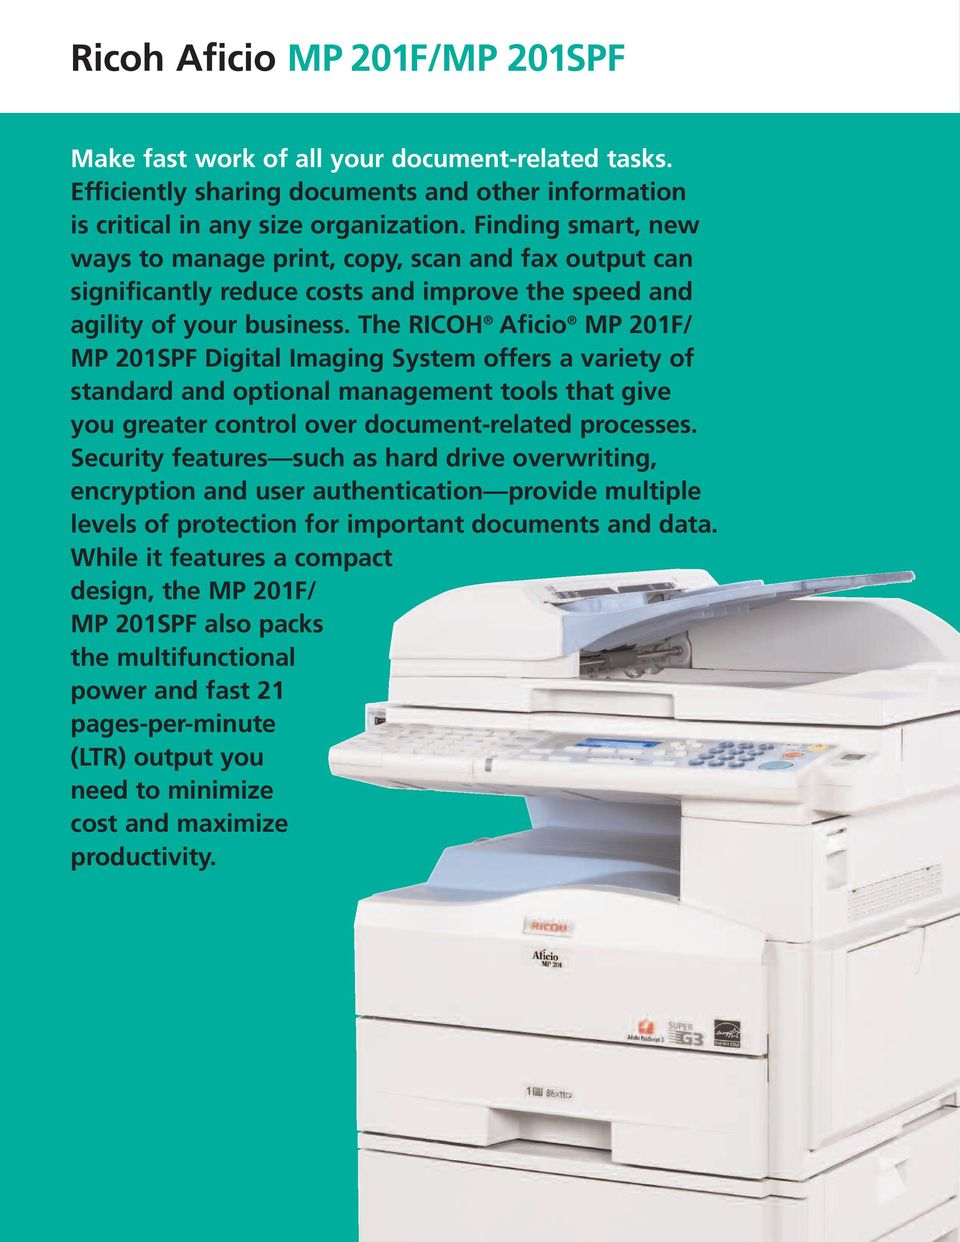 The RICOH Aficio MP 201F/ MP 201SPF Digital Imaging System offers a variety of standard and optional management tools that give you greater control over document-related processes.